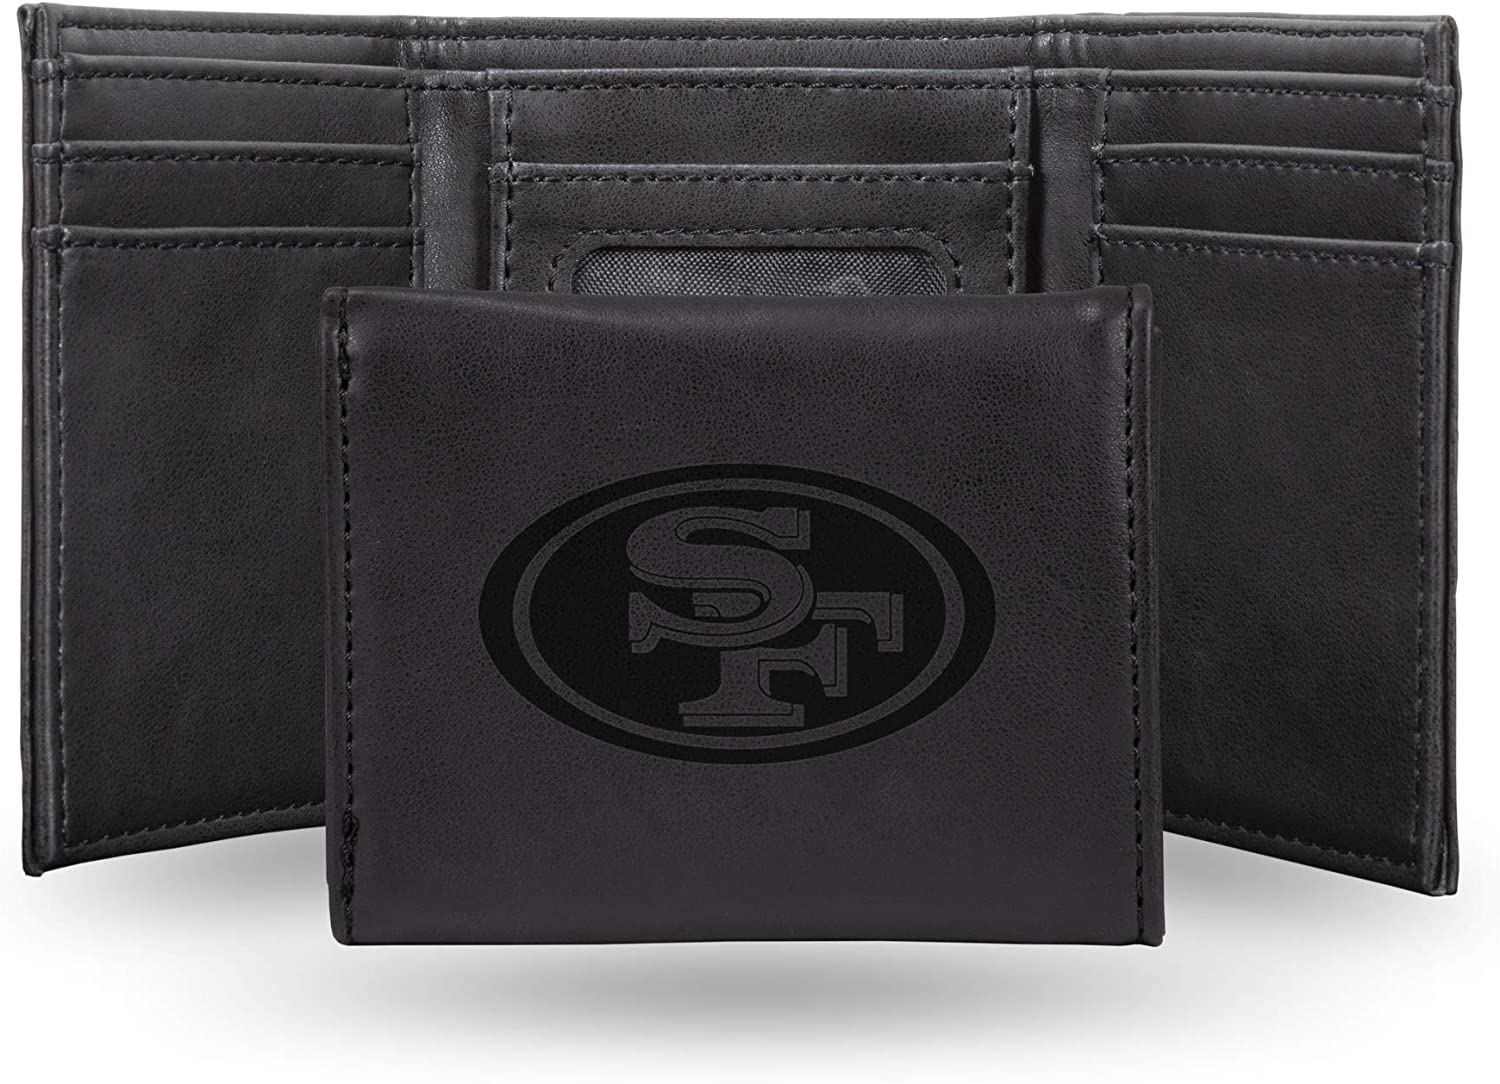 NFL Rico Industries Laser Engraved Francisco San Trifold Max 63% OFF Ultra-Cheap Deals Wallet